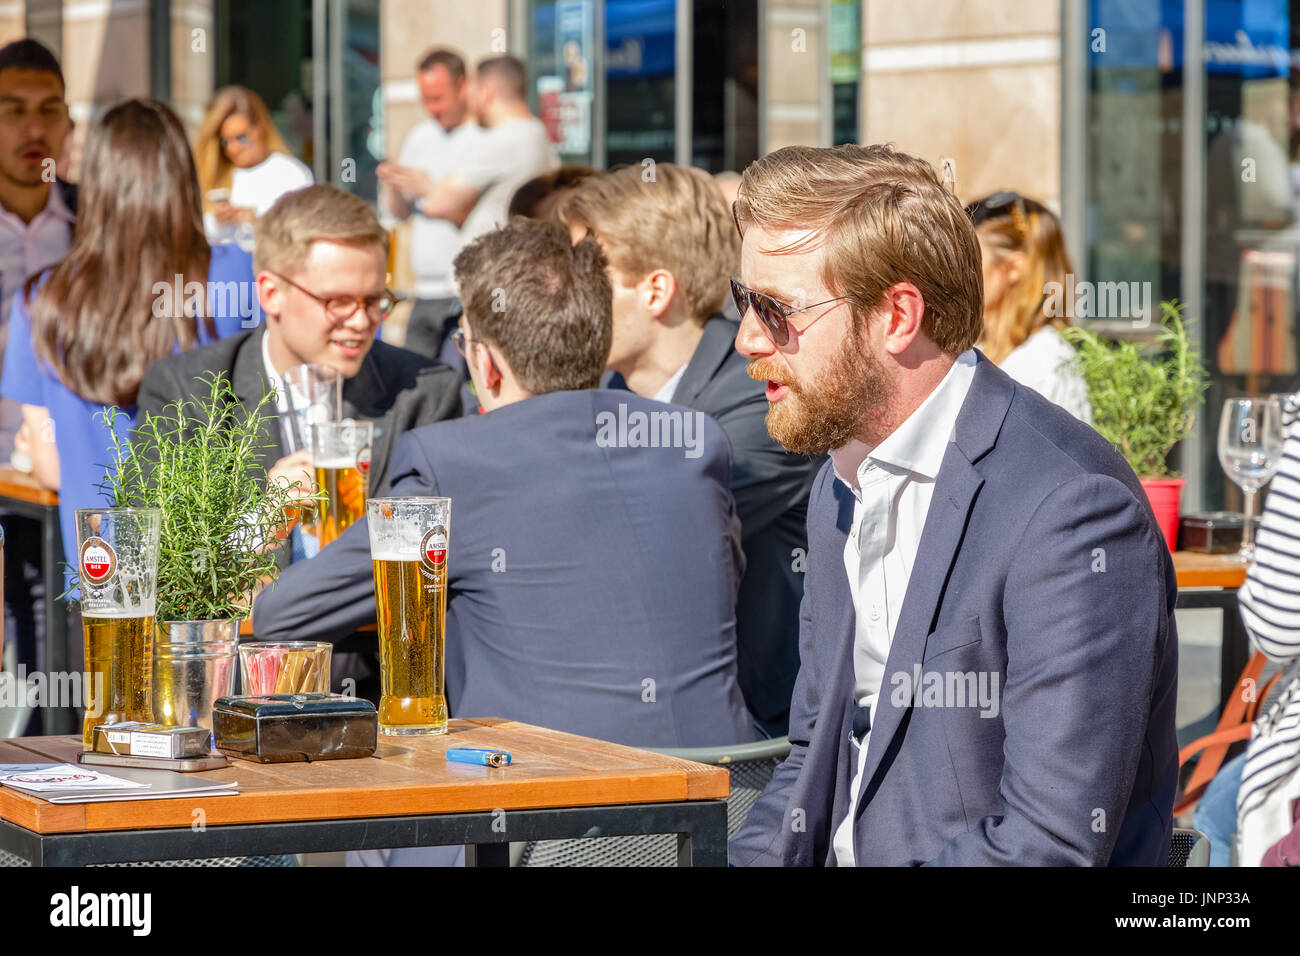 London, UK - May 10, 2017 - A young businessman at a outdoor bar in Canary Wharf packed with people drinking on a sunny day - Stock Image